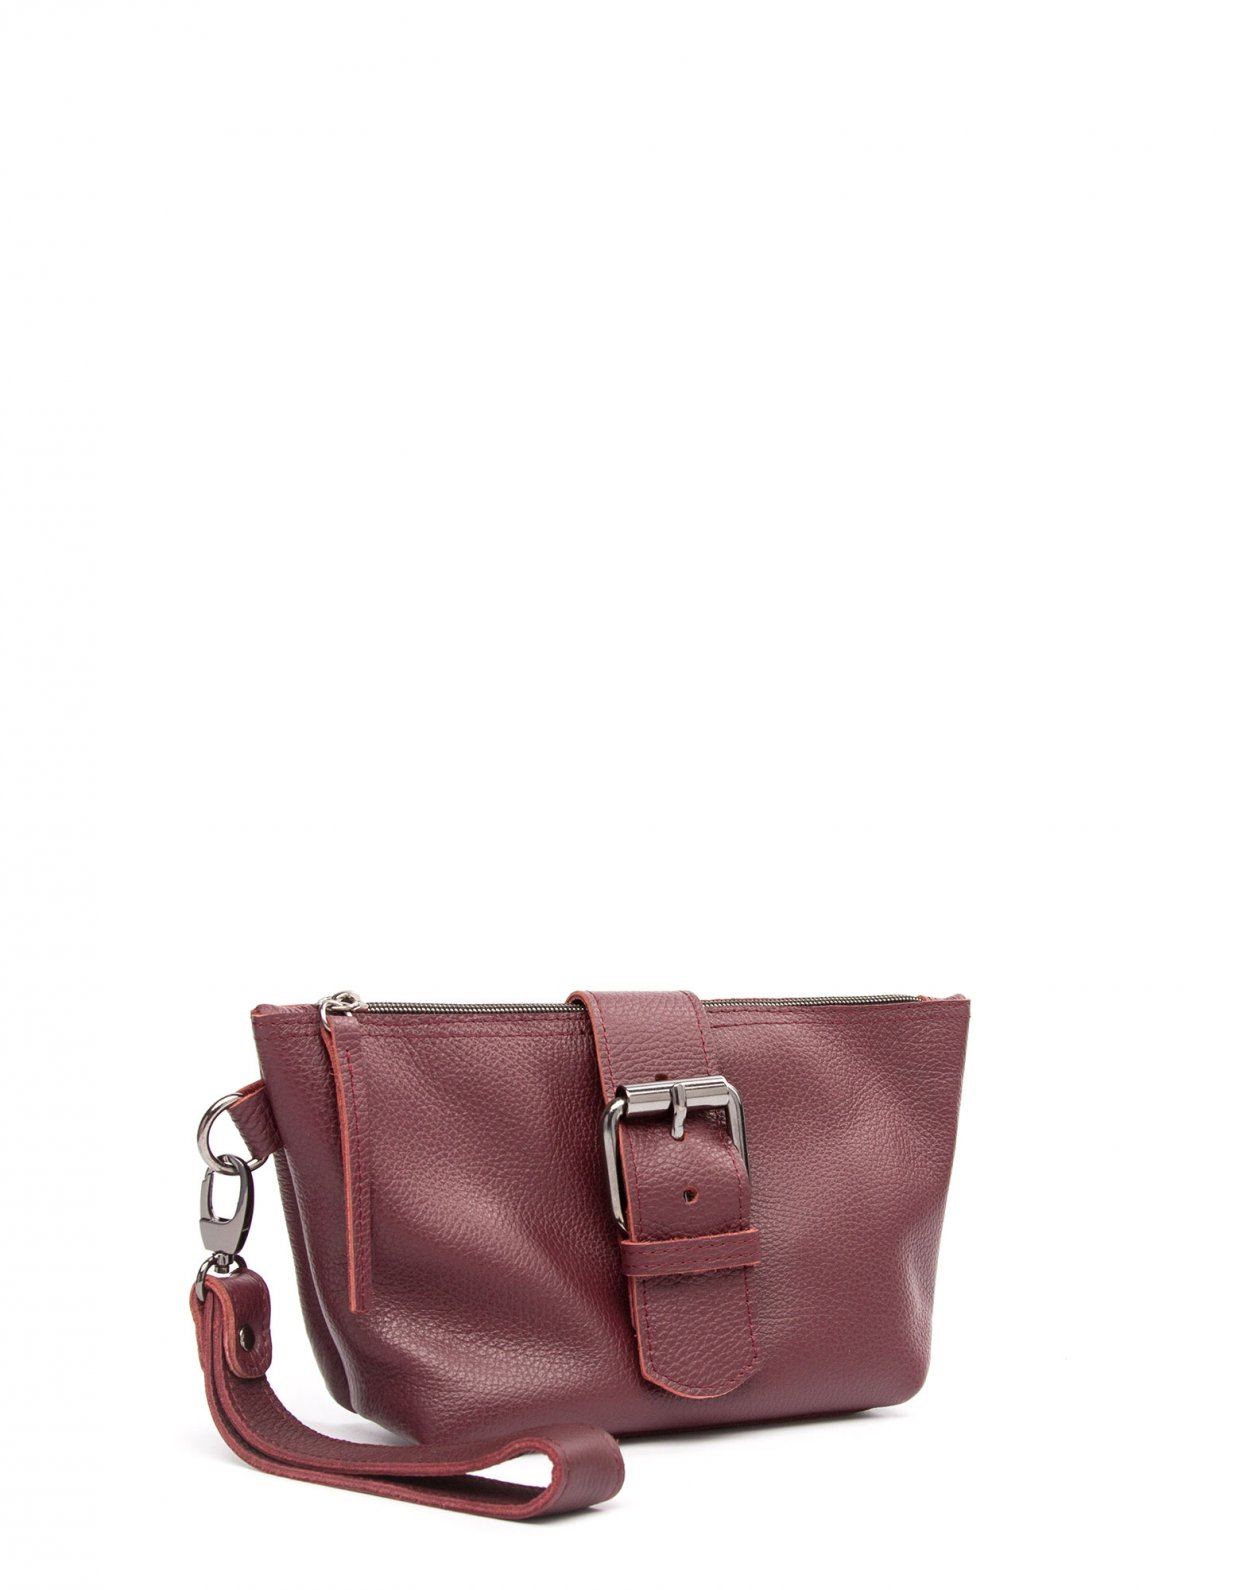 Elena Athanasiou Day to evening clutch bag burgundy